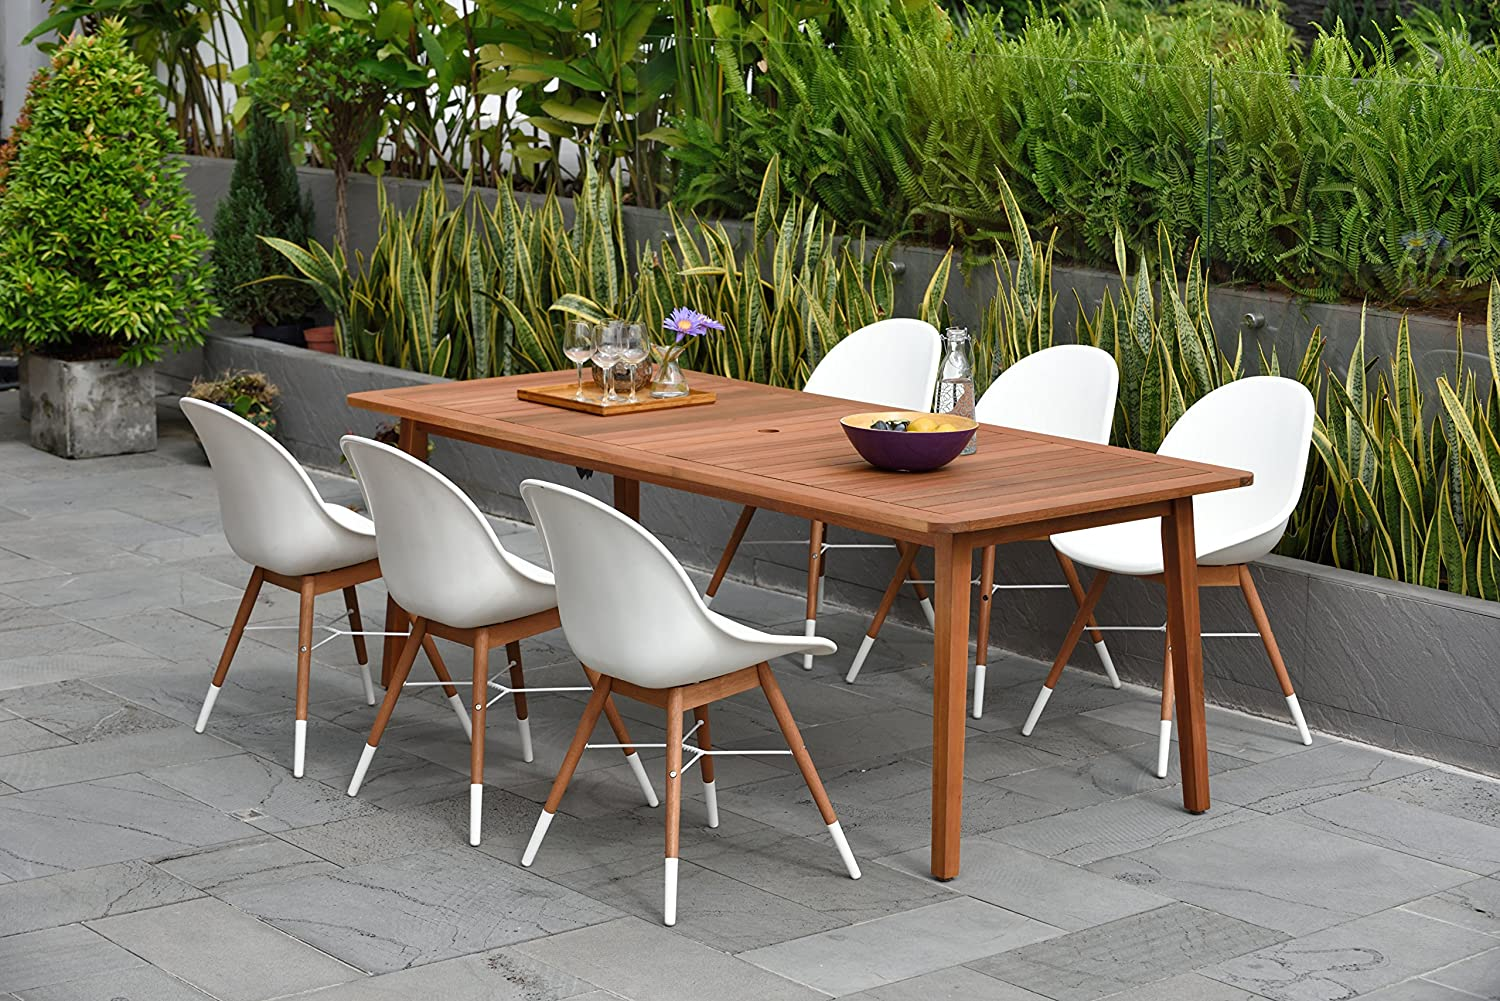 Brampton 7 Piece Outdoor Eucalyptus Rectangular Dining Set   Perfect for Patio   with White Chairs